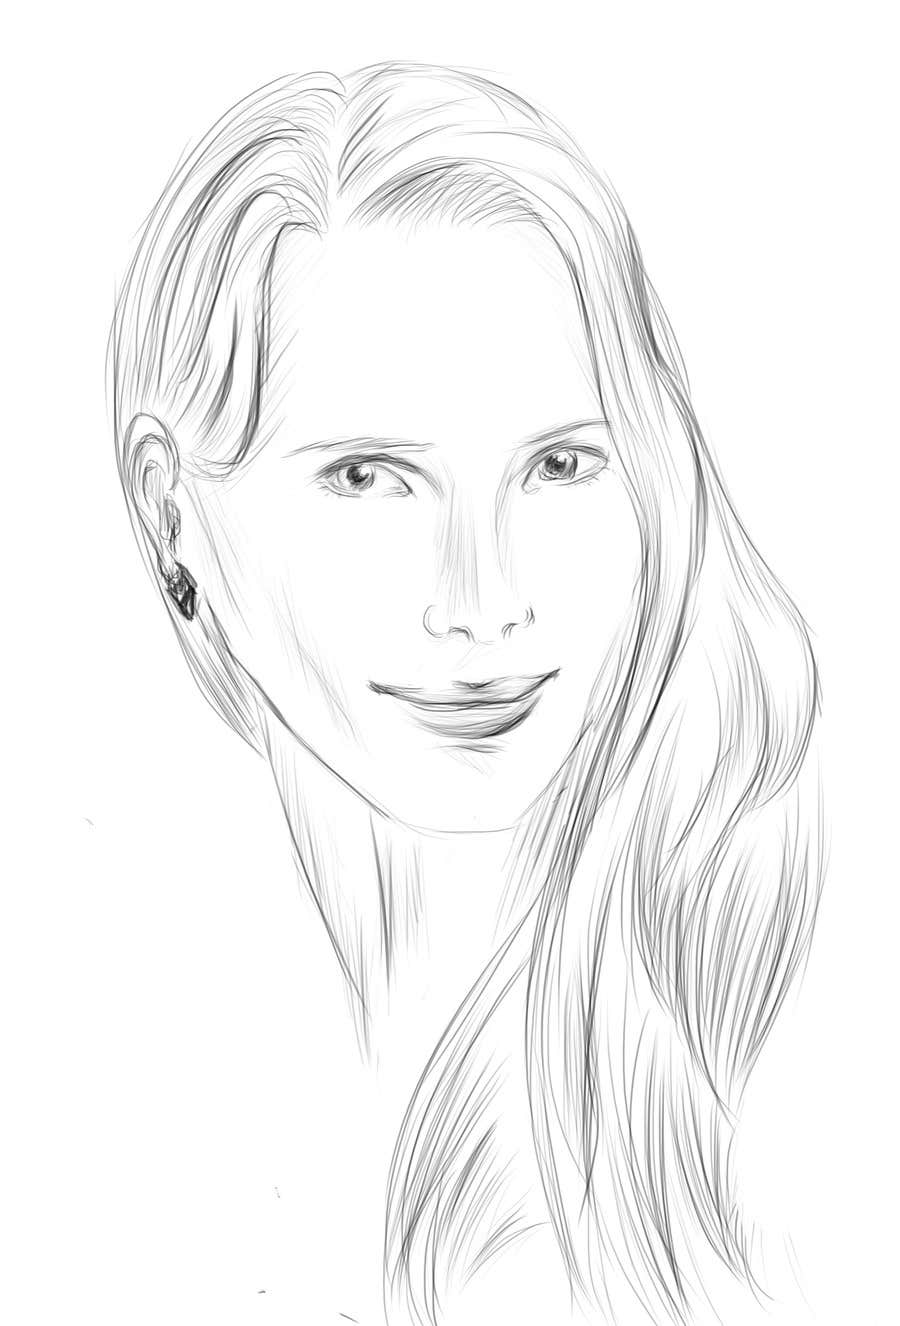 Konkurrenceindlæg #8 for Neede:  Avatar Drawing Style of my portrait.